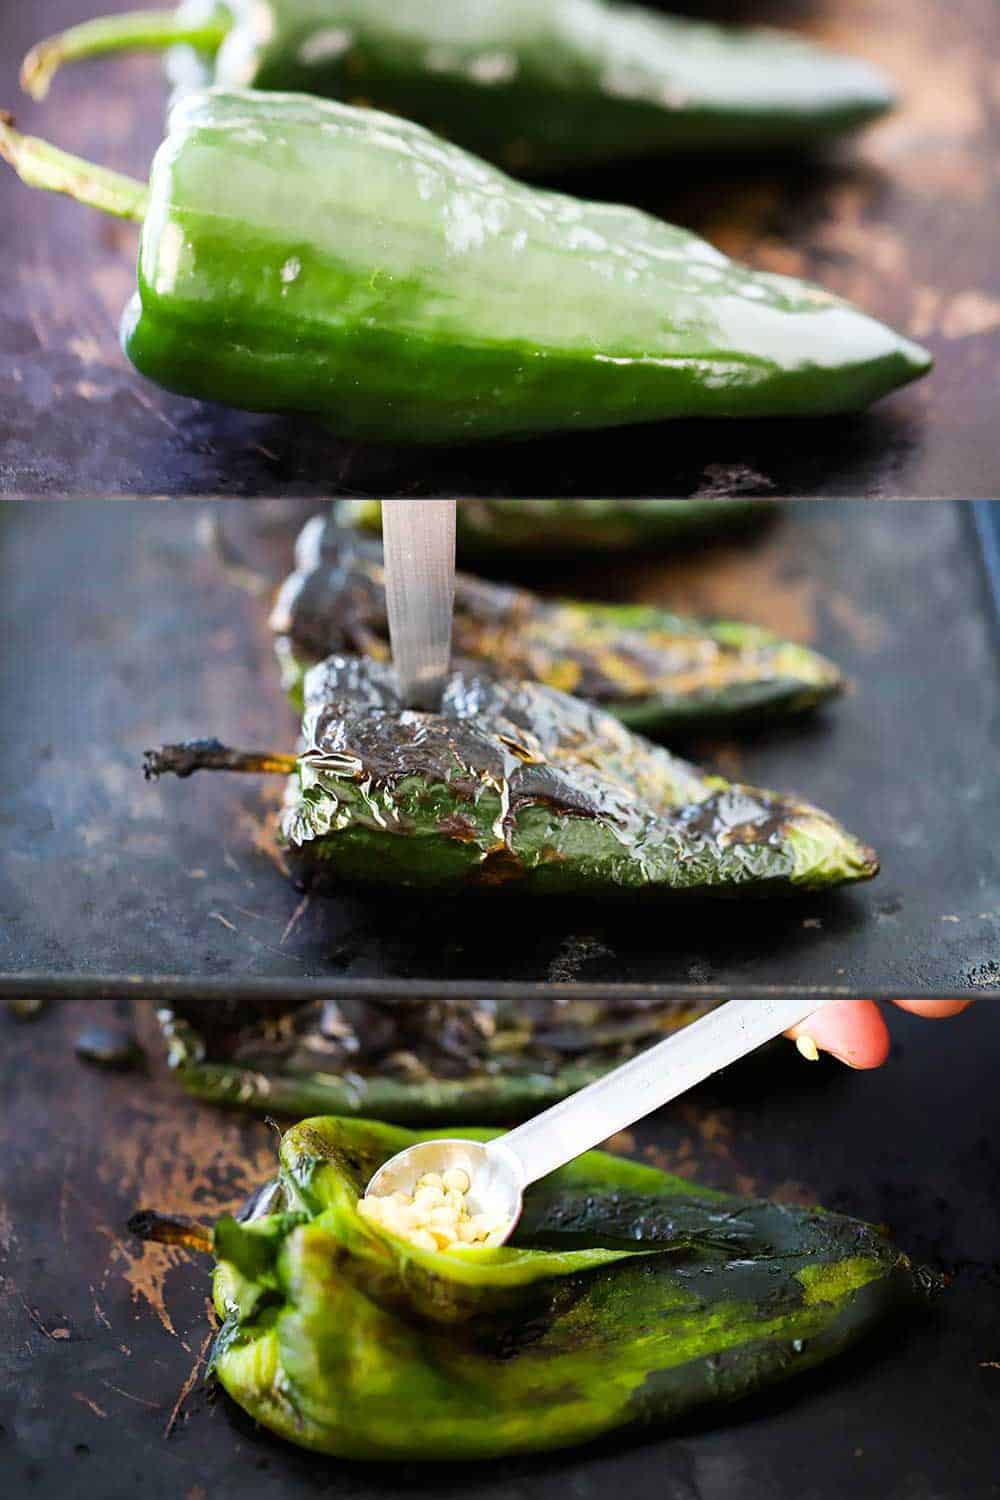 3 stacked images, the top are poblanos peppers on a baking sheet, and the next are roasted poblanos and the bottom image is a hand removing seeds with a spoon.